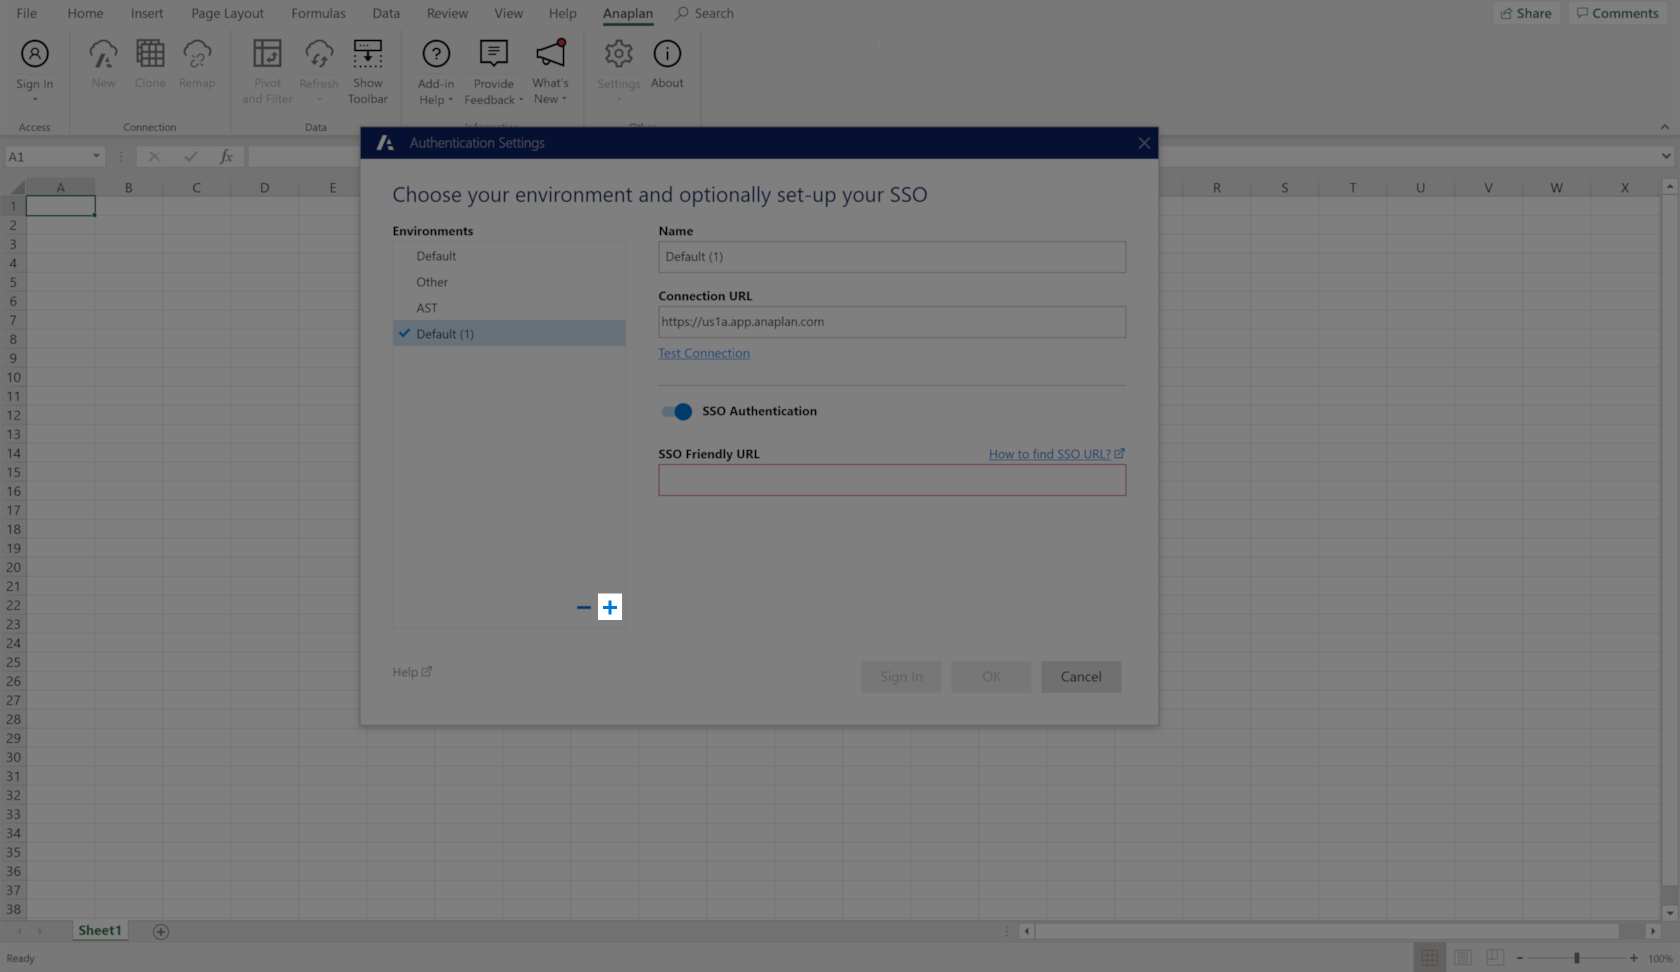 Click the plus sign at the bottom-right of the Environments panel to add authentication settings.